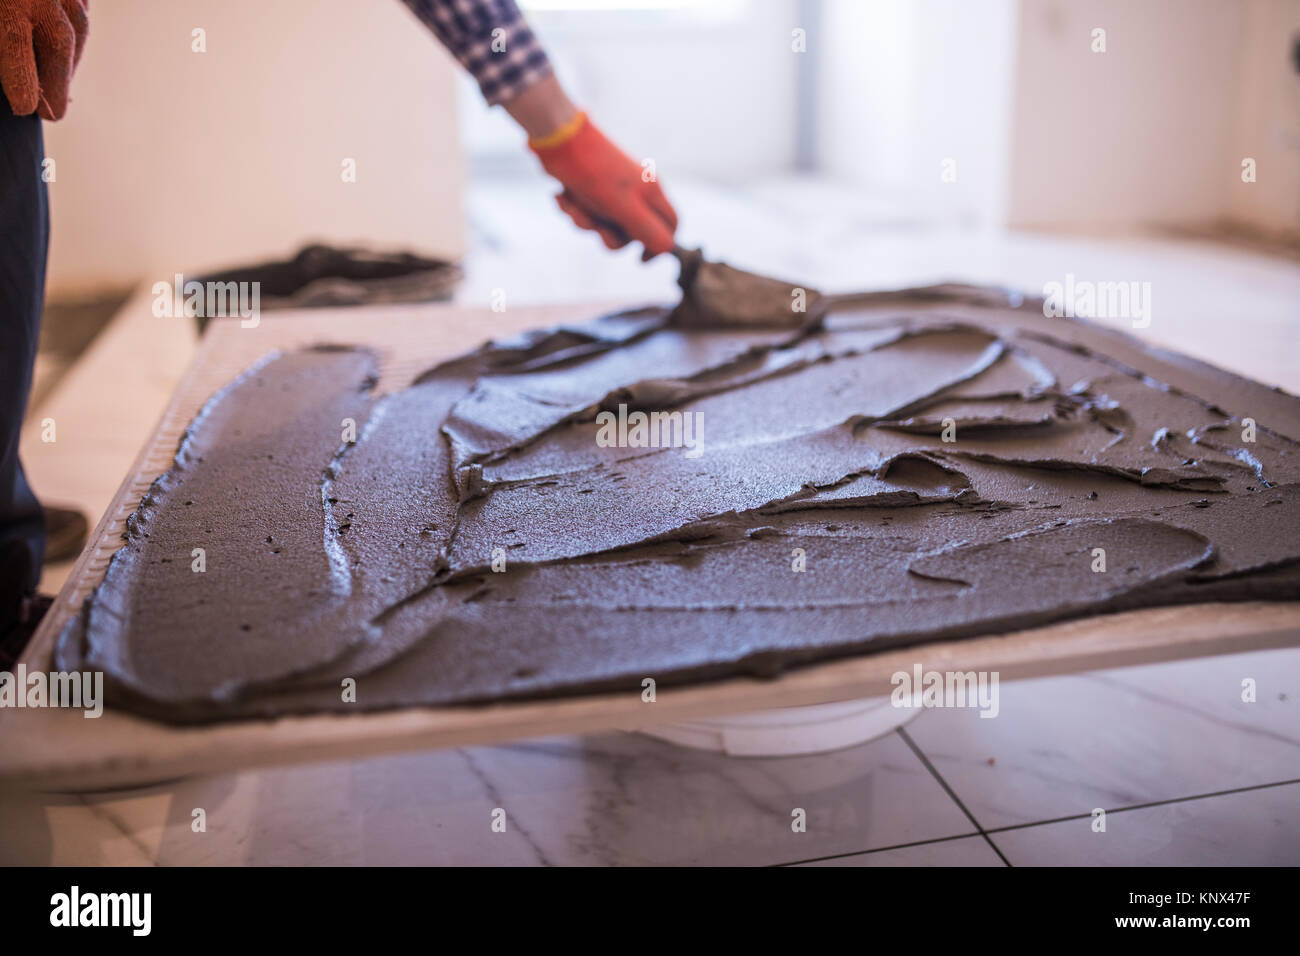 Laying ceramic tiles troweling mortar onto a concrete floor in laying ceramic tiles troweling mortar onto a concrete floor in preparation for laying floor tile dailygadgetfo Image collections